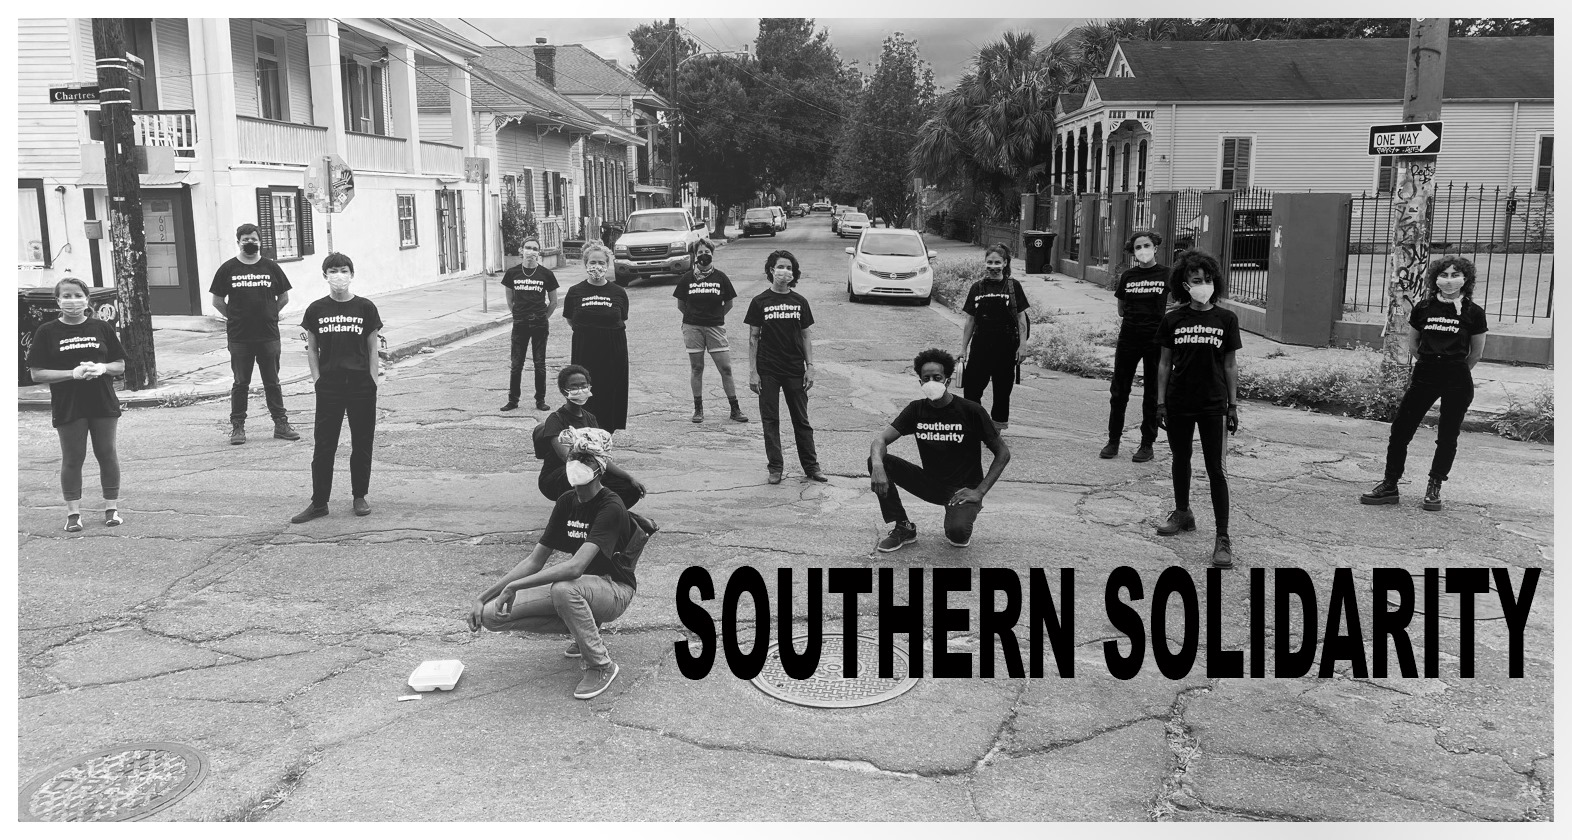 A group photo of Southern Solidarity